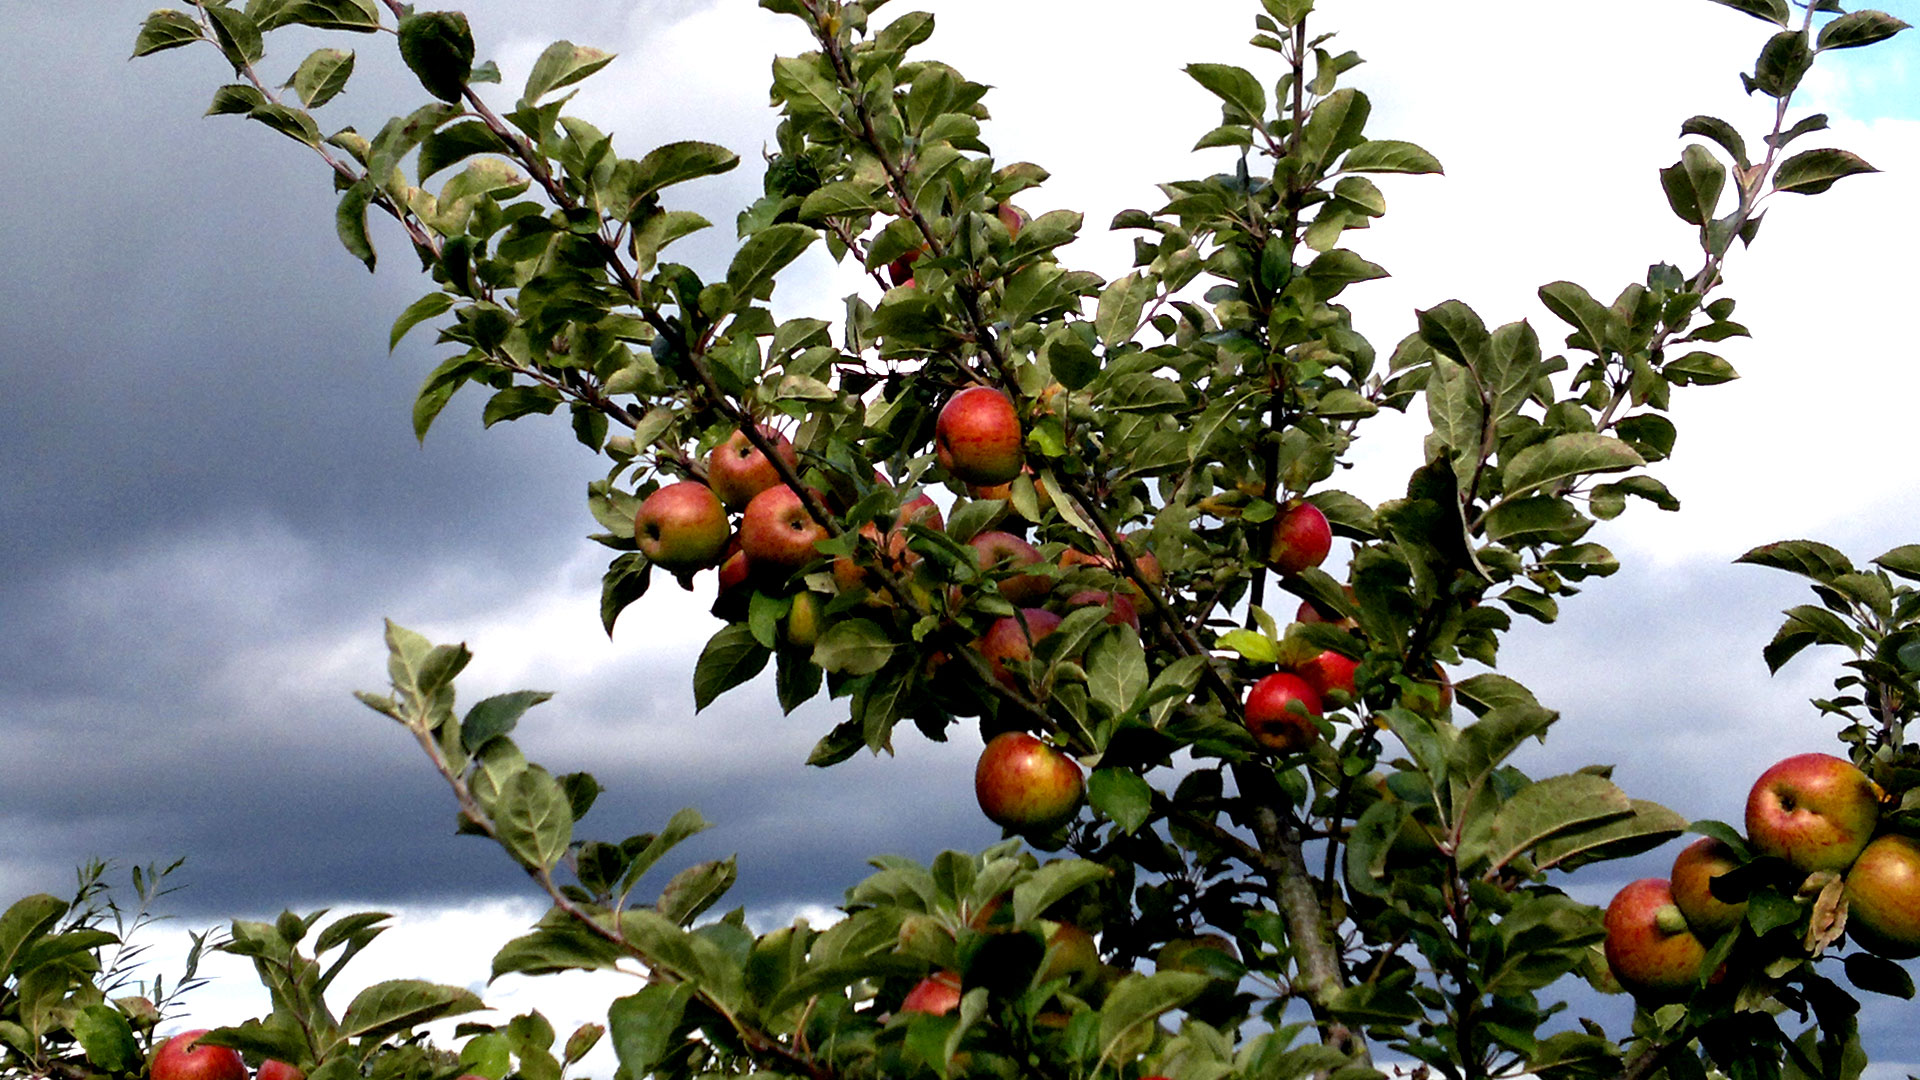 Sussex apples